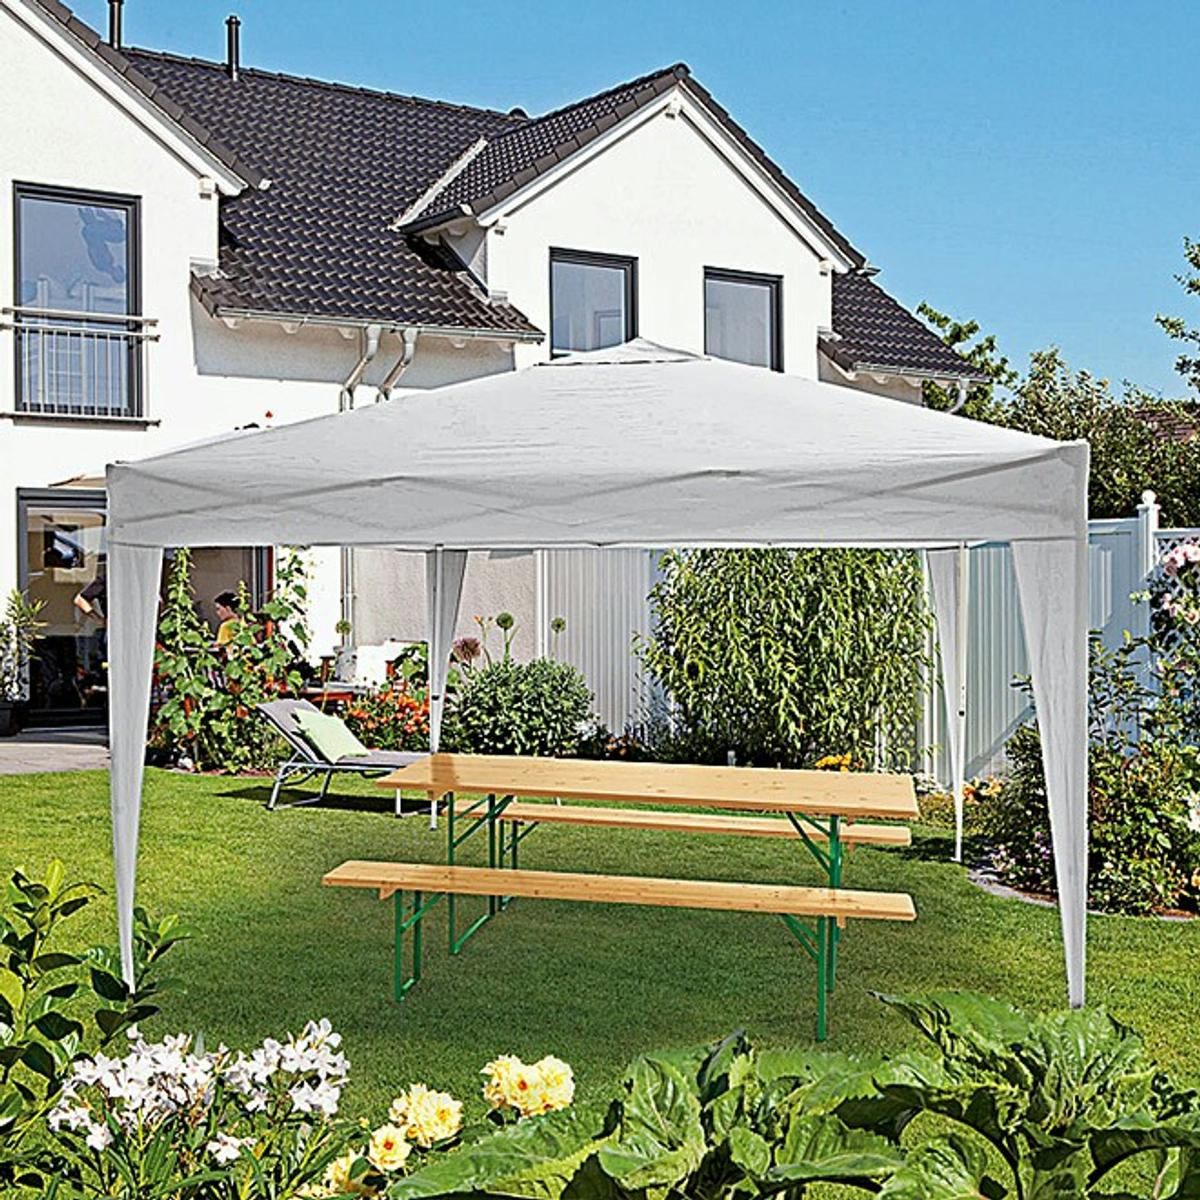 Markisenstoff Auswechseln Sunfun Pavillon Easy Up Sunfun Pavillon In 69124 ...